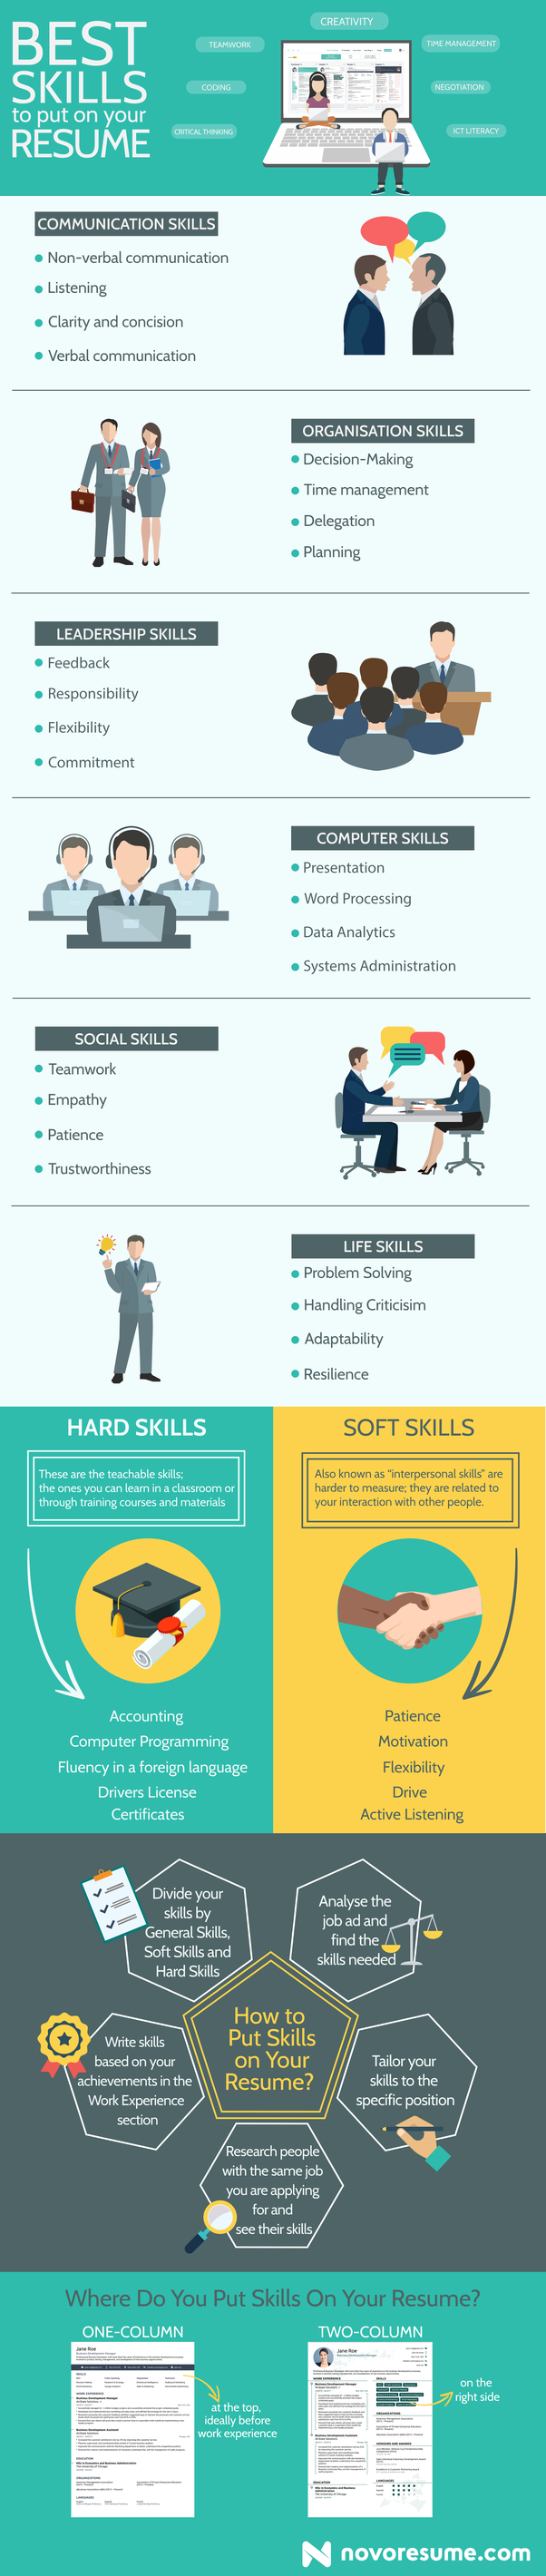 what skills are relevant to include in resumes quora